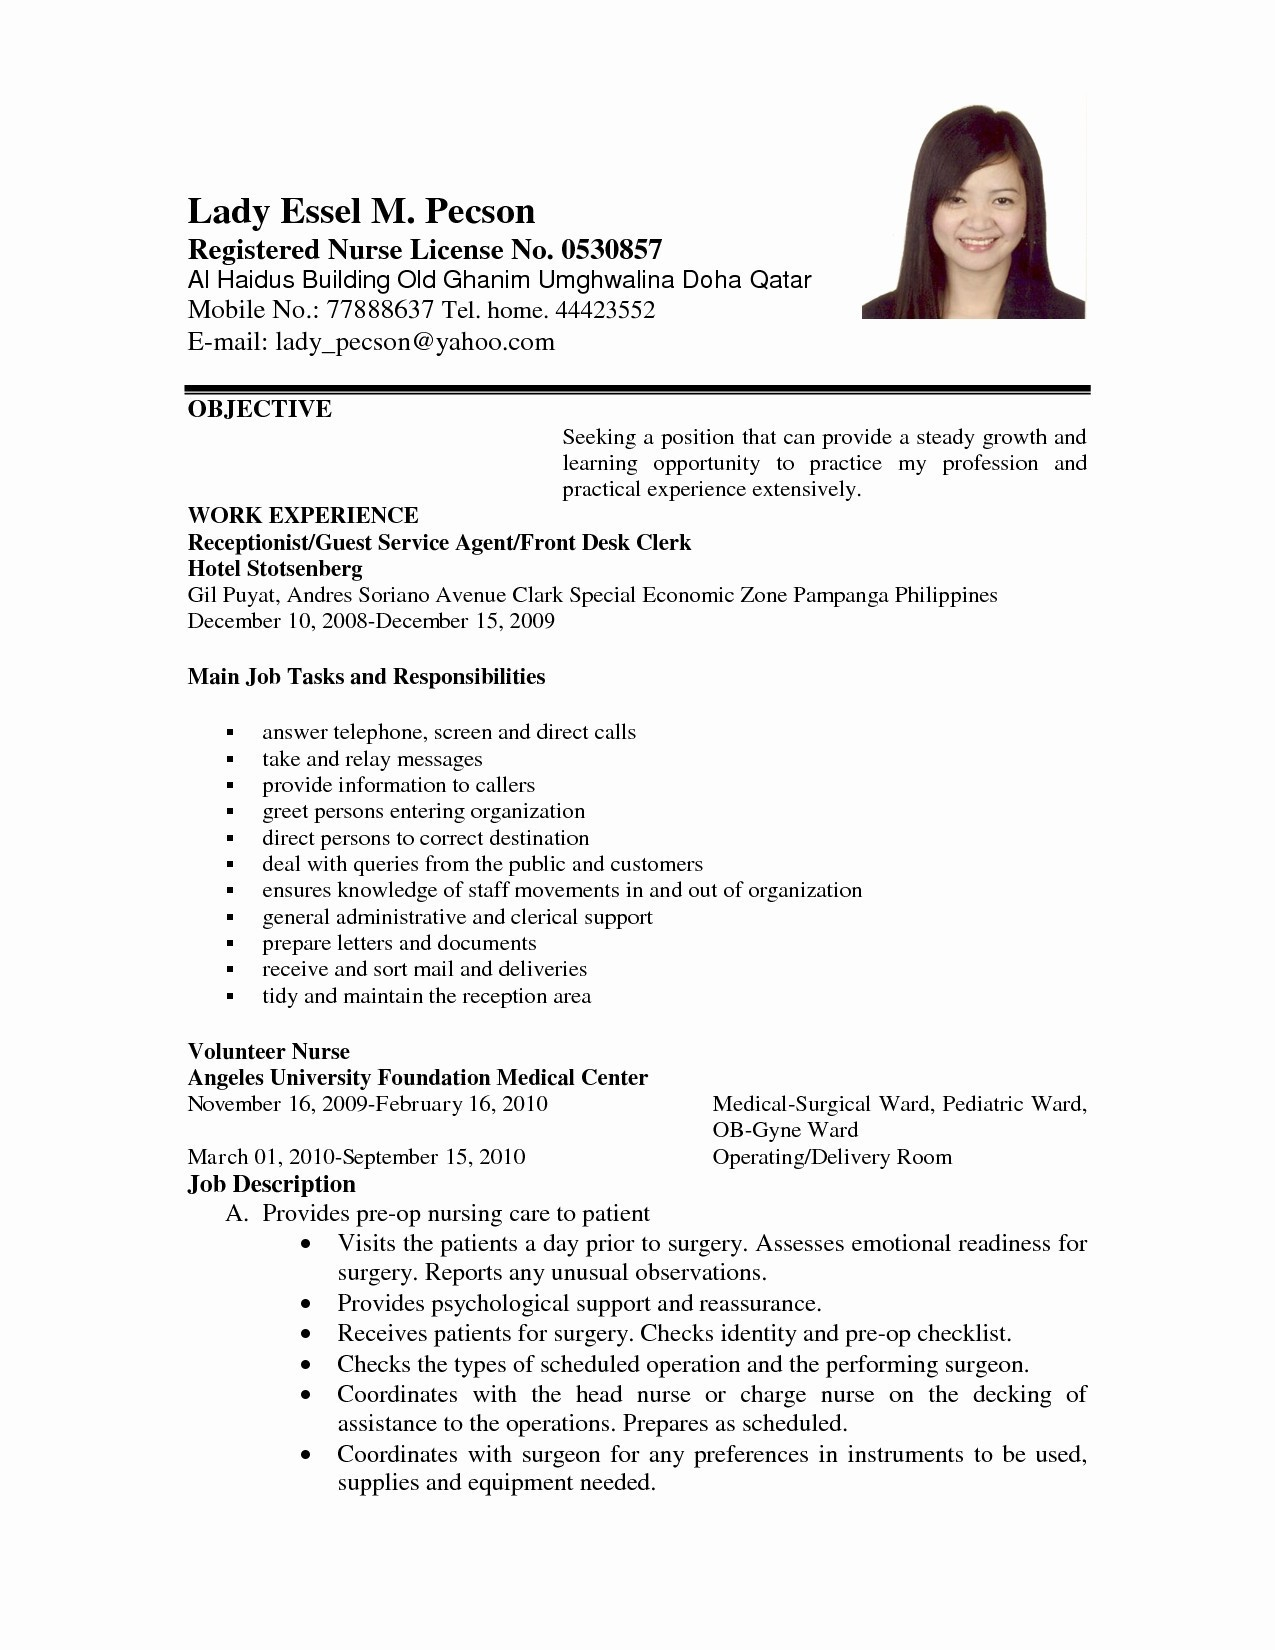 Interior Design Resume Template - Instructional Designer Resume Unique Instructional Designer Resume